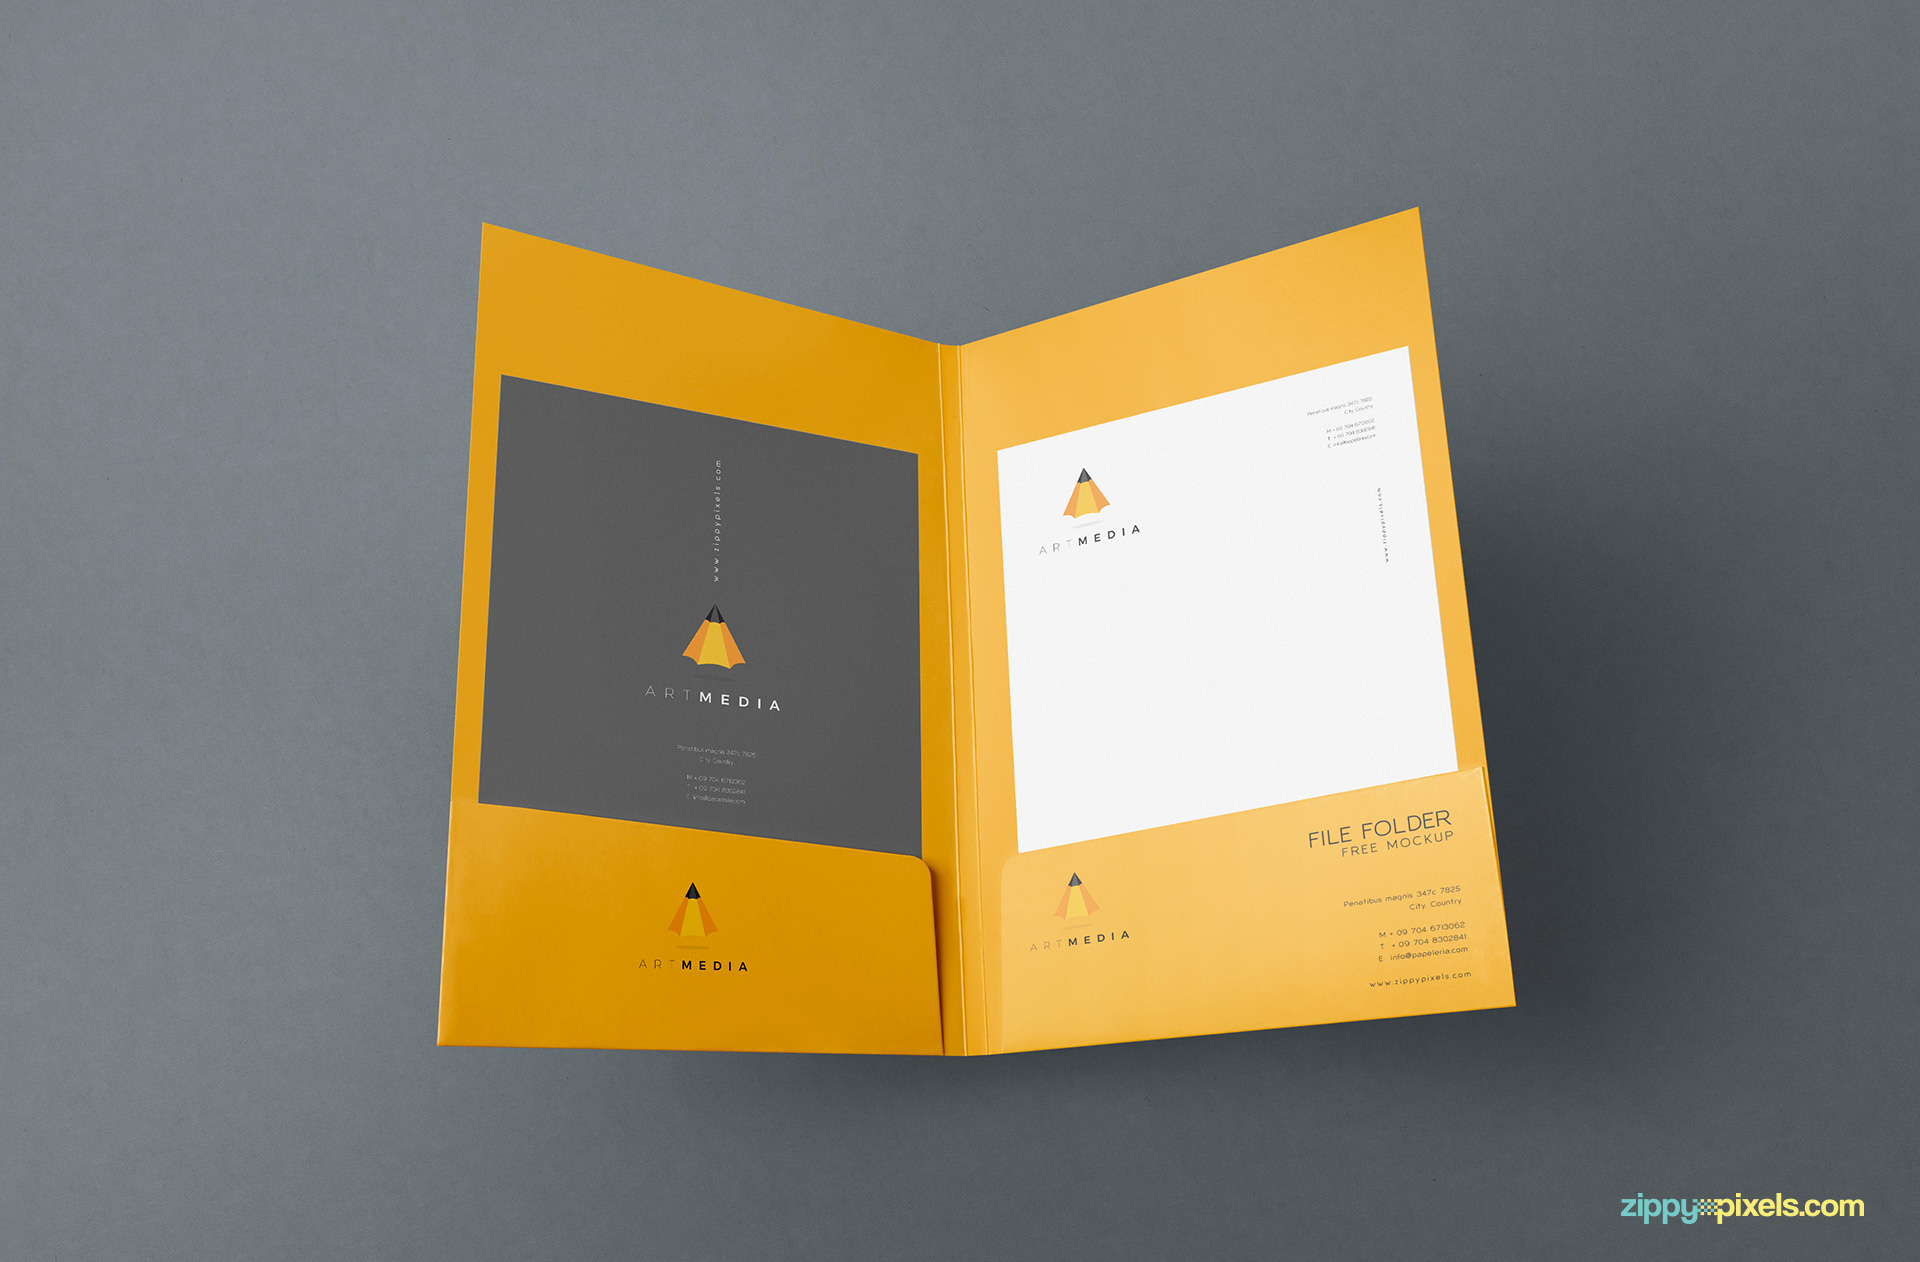 Full view of the folder mockups from inside.